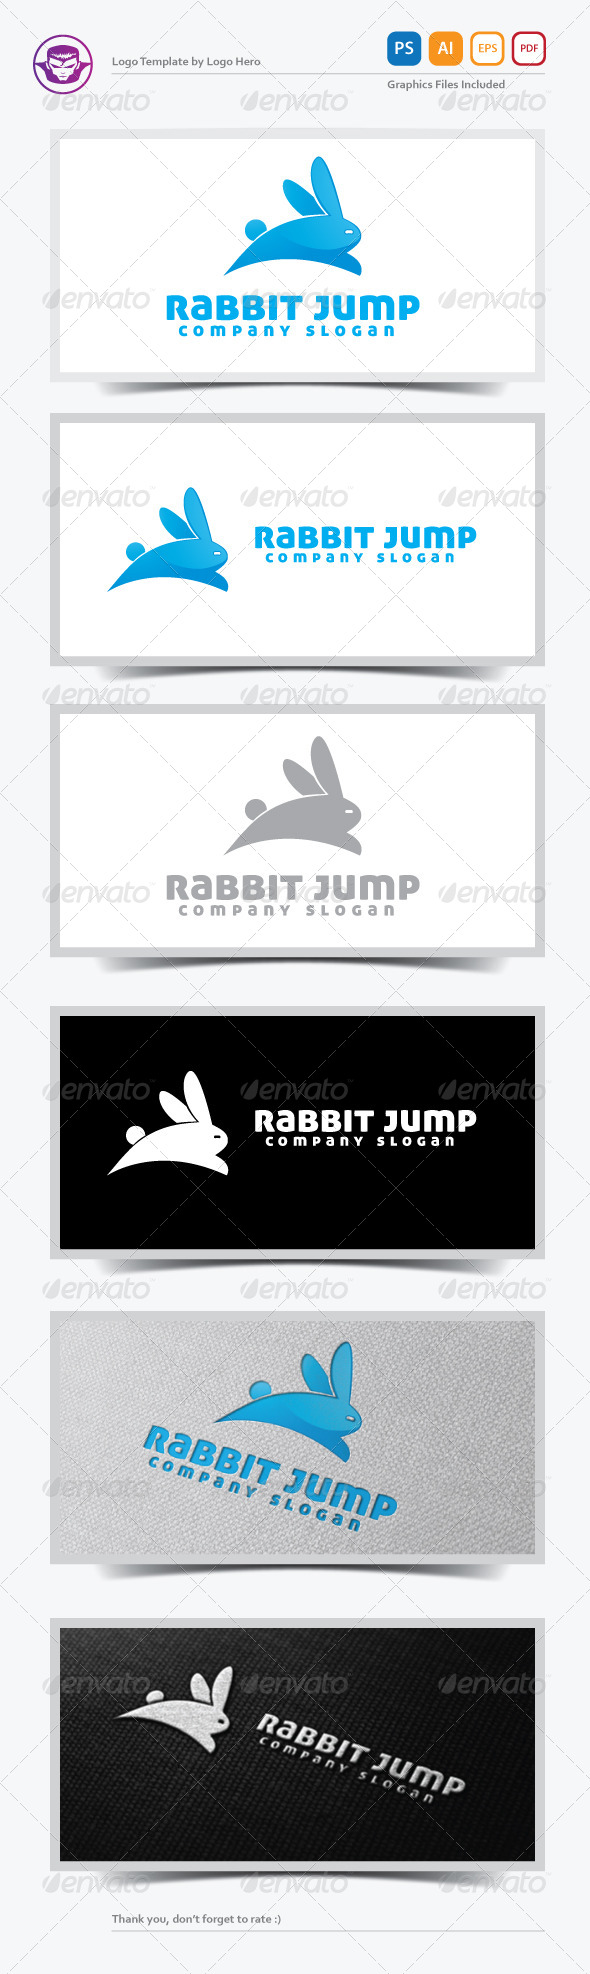 GraphicRiver Rabbit Jump Logo Template 5377620